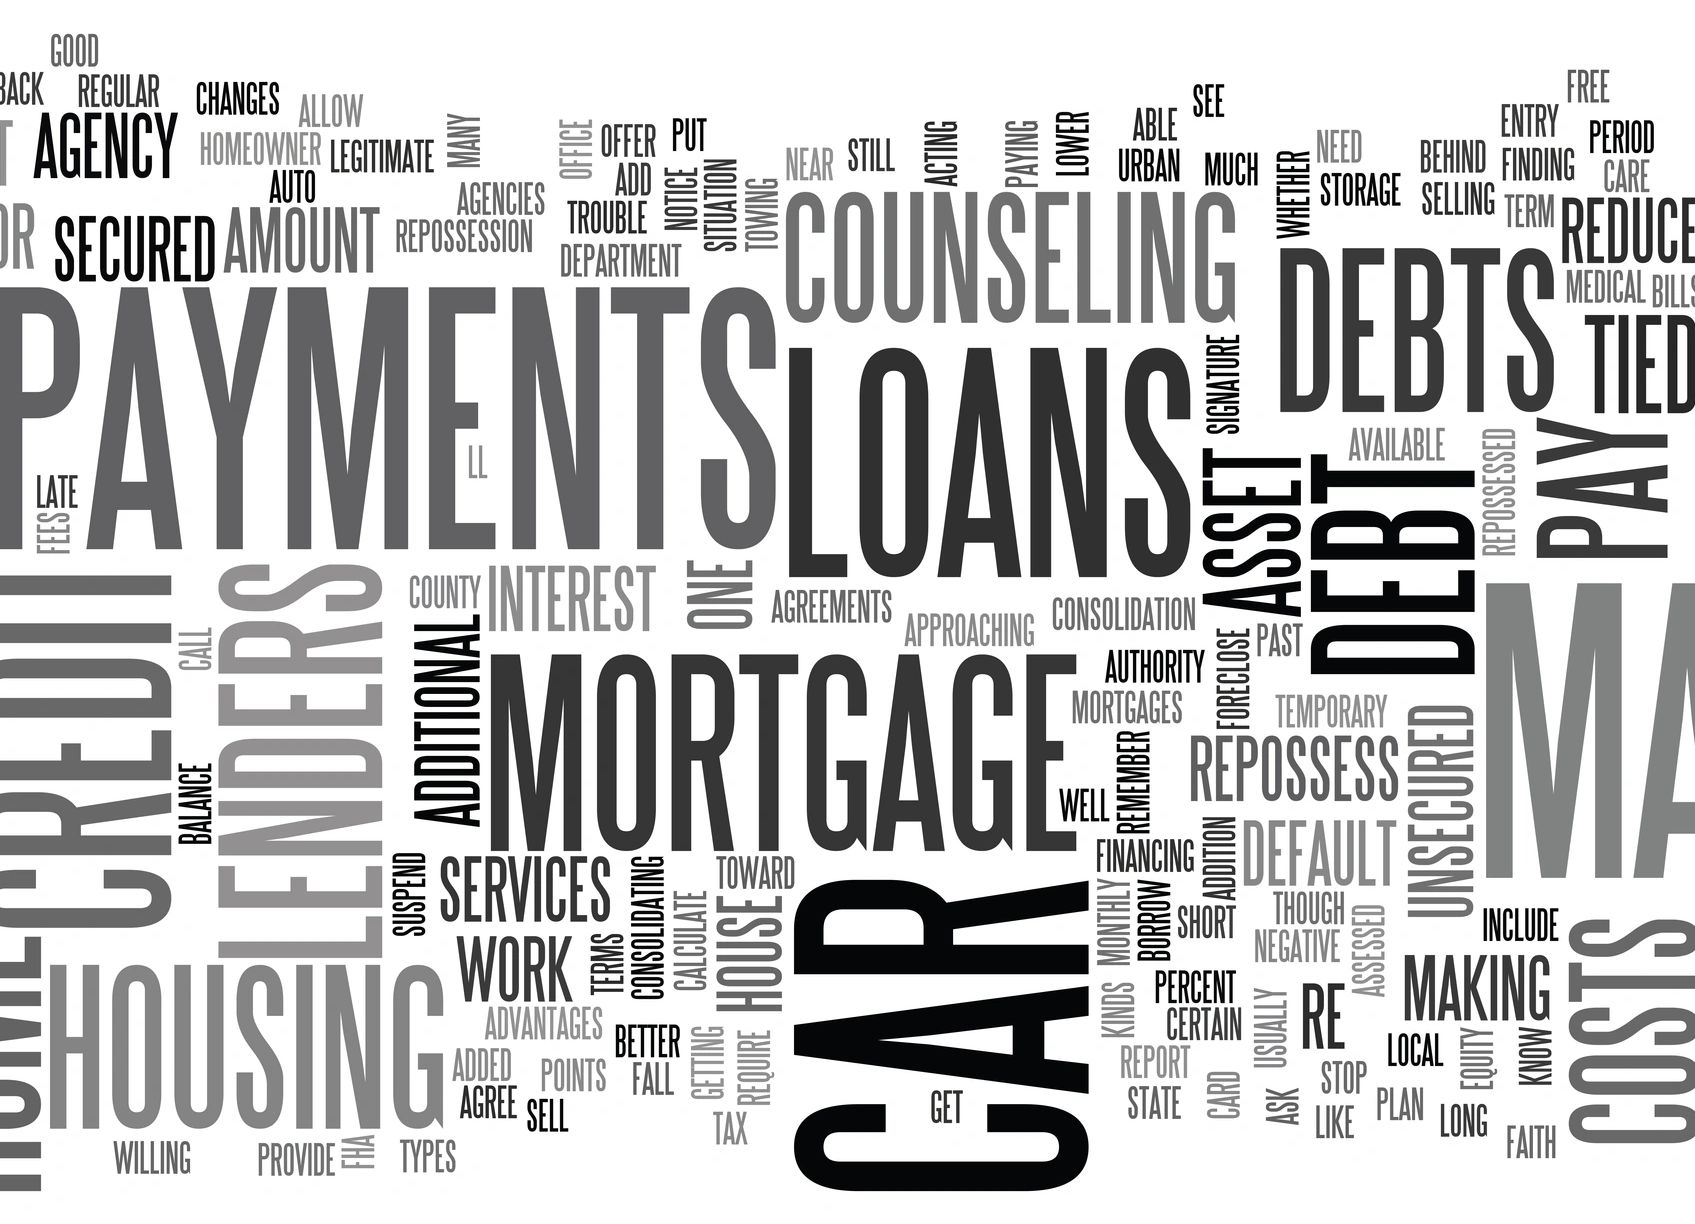 Financial counseling for debt, first time home buyer, mortgage, housing, Reverse Mortgages